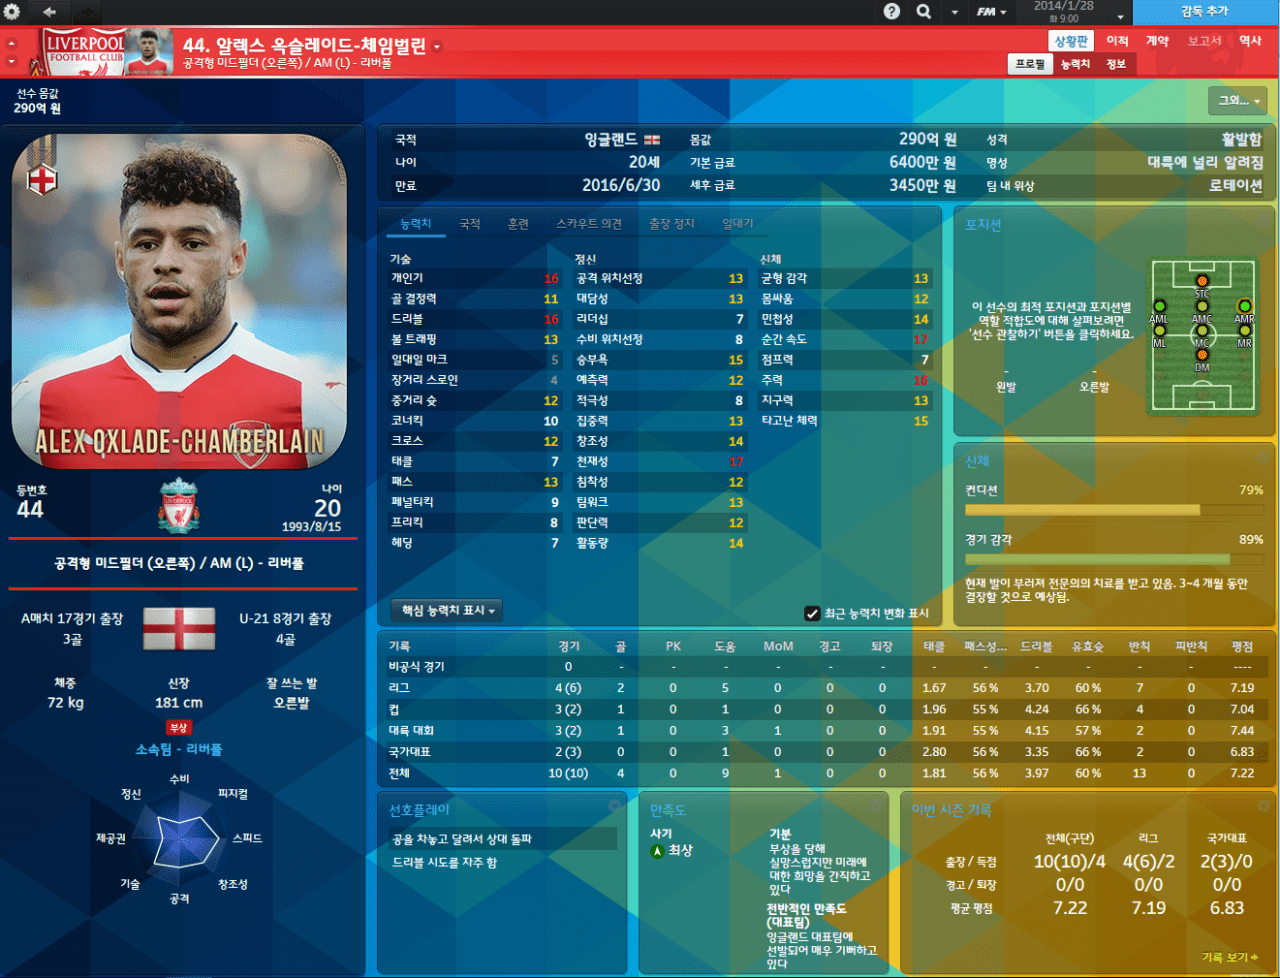 Chamberlain.PNG [14.3.1] Football Manager 2014 17-18 EU Transfer FMDONG ROSTER BETA v0.61